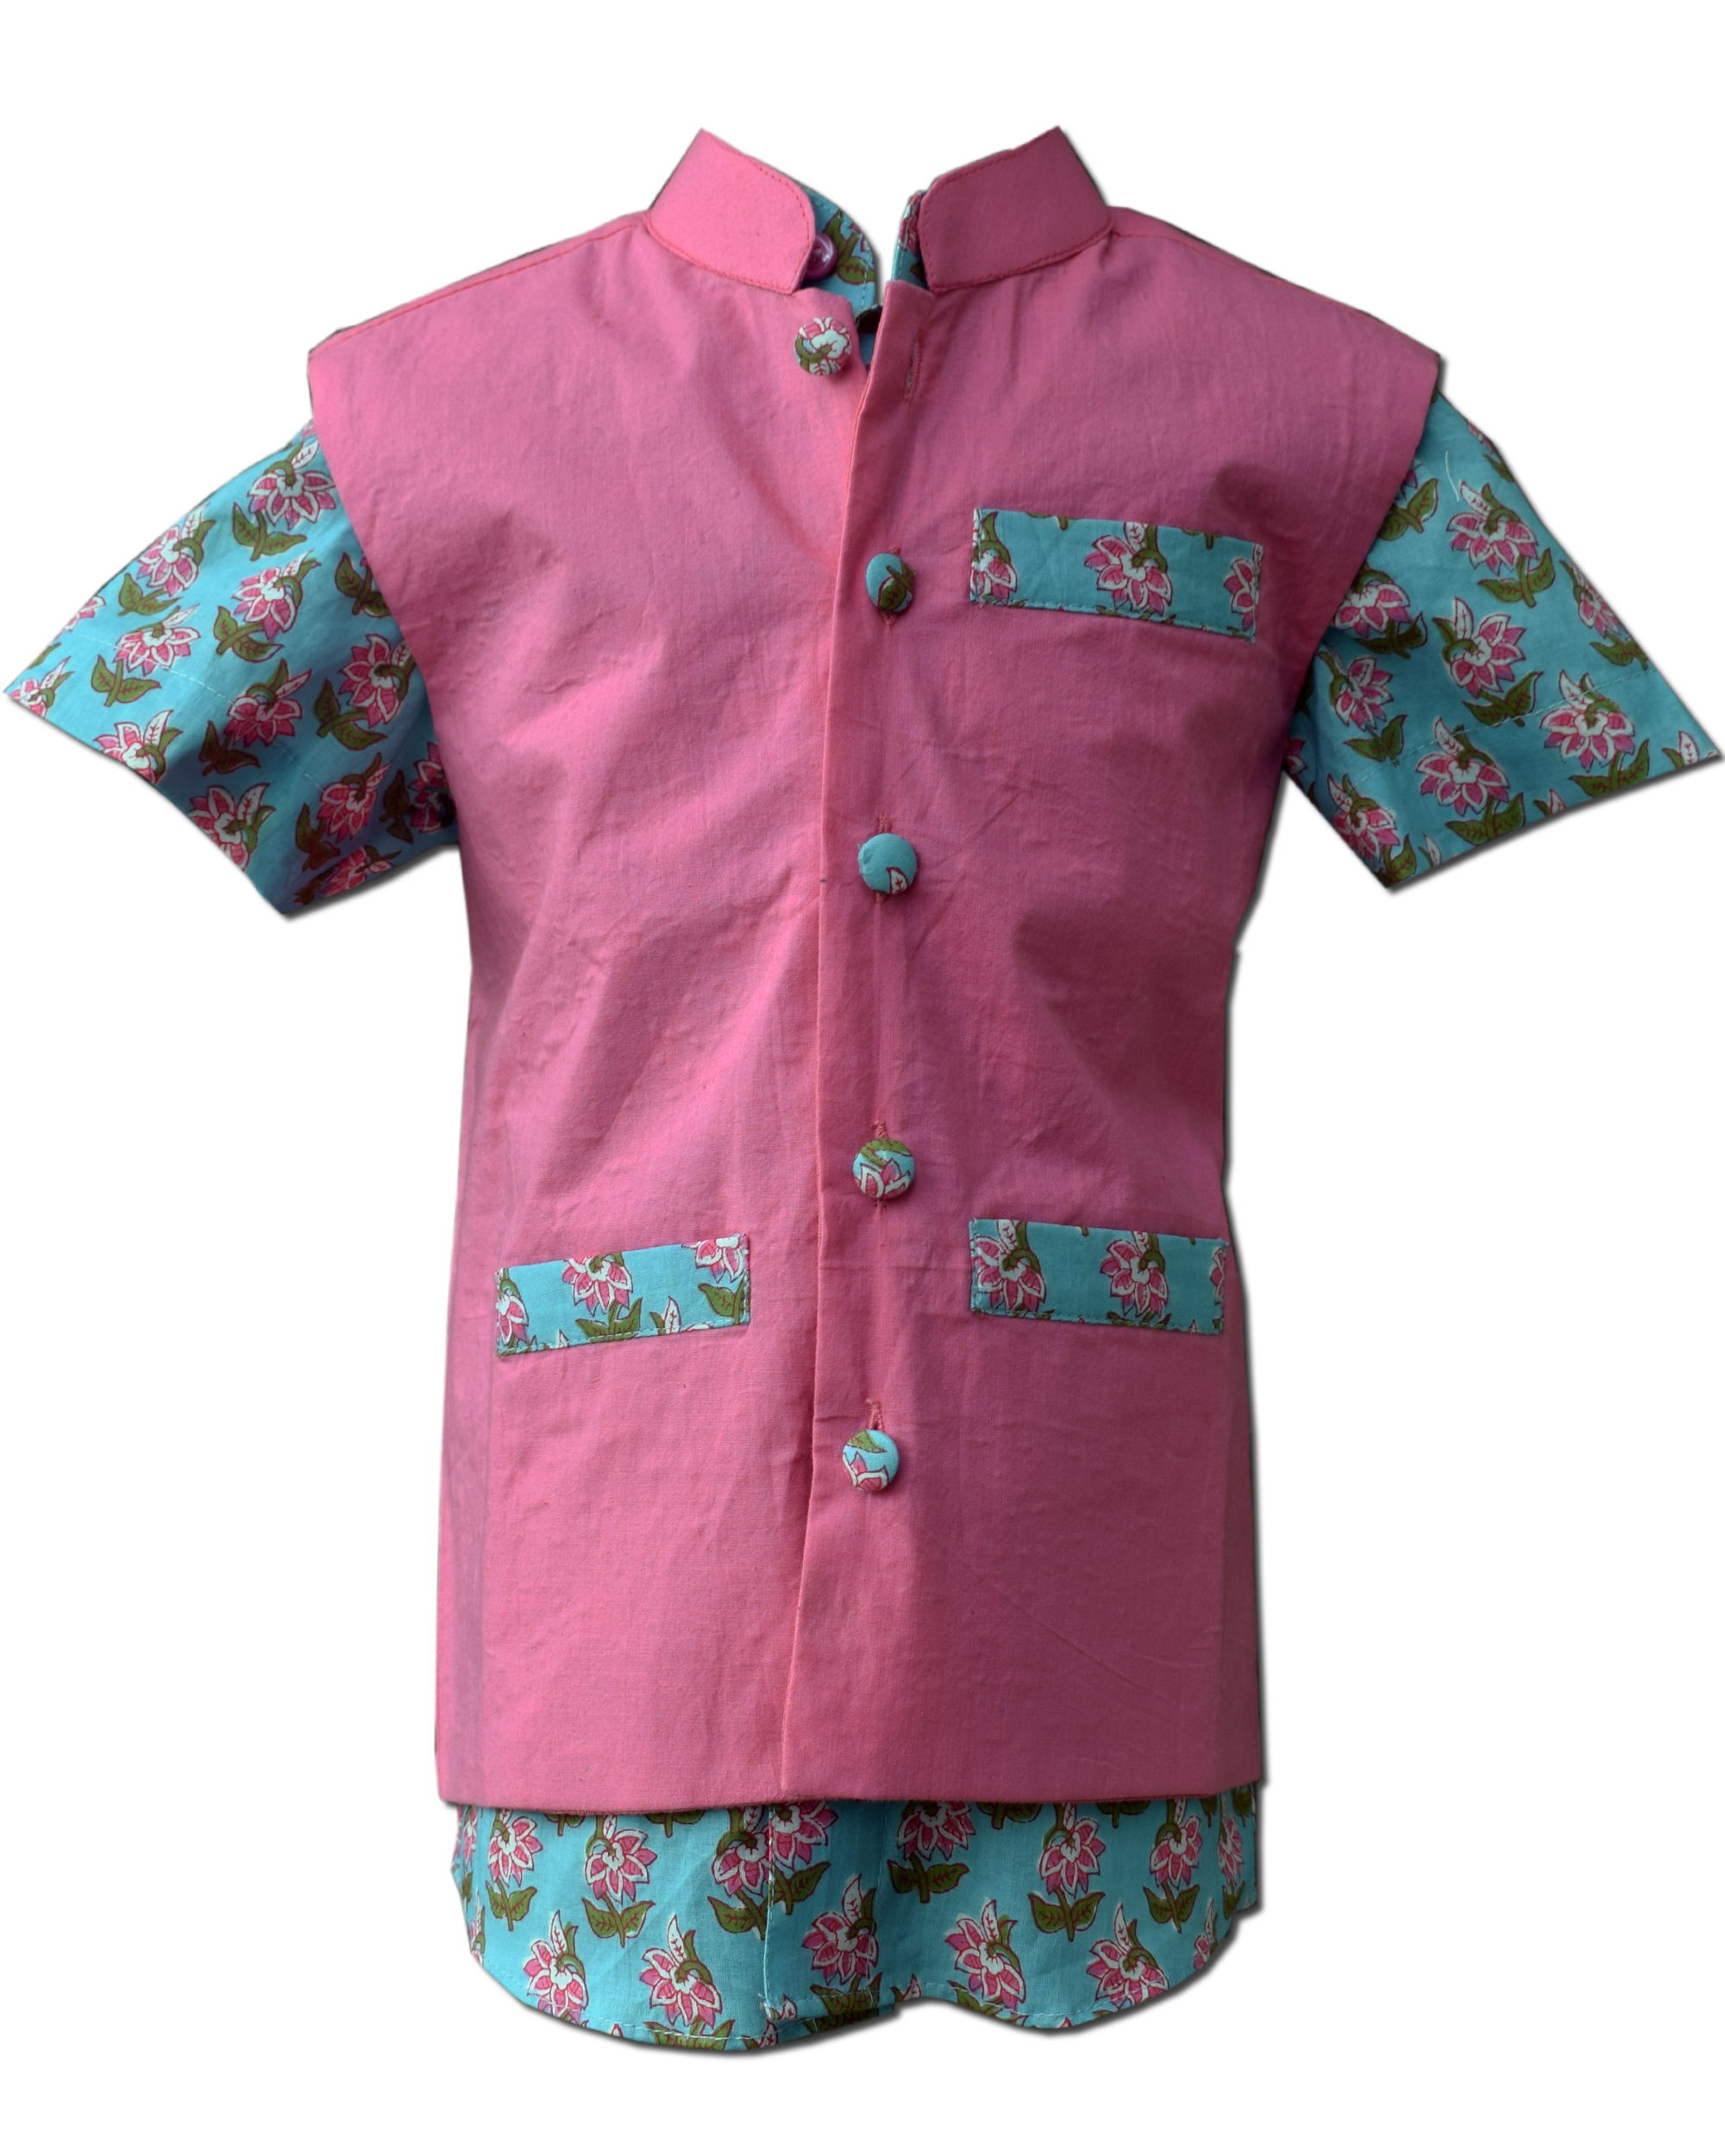 Blue floral printed mandarin shirt with nehru jacket - set of two